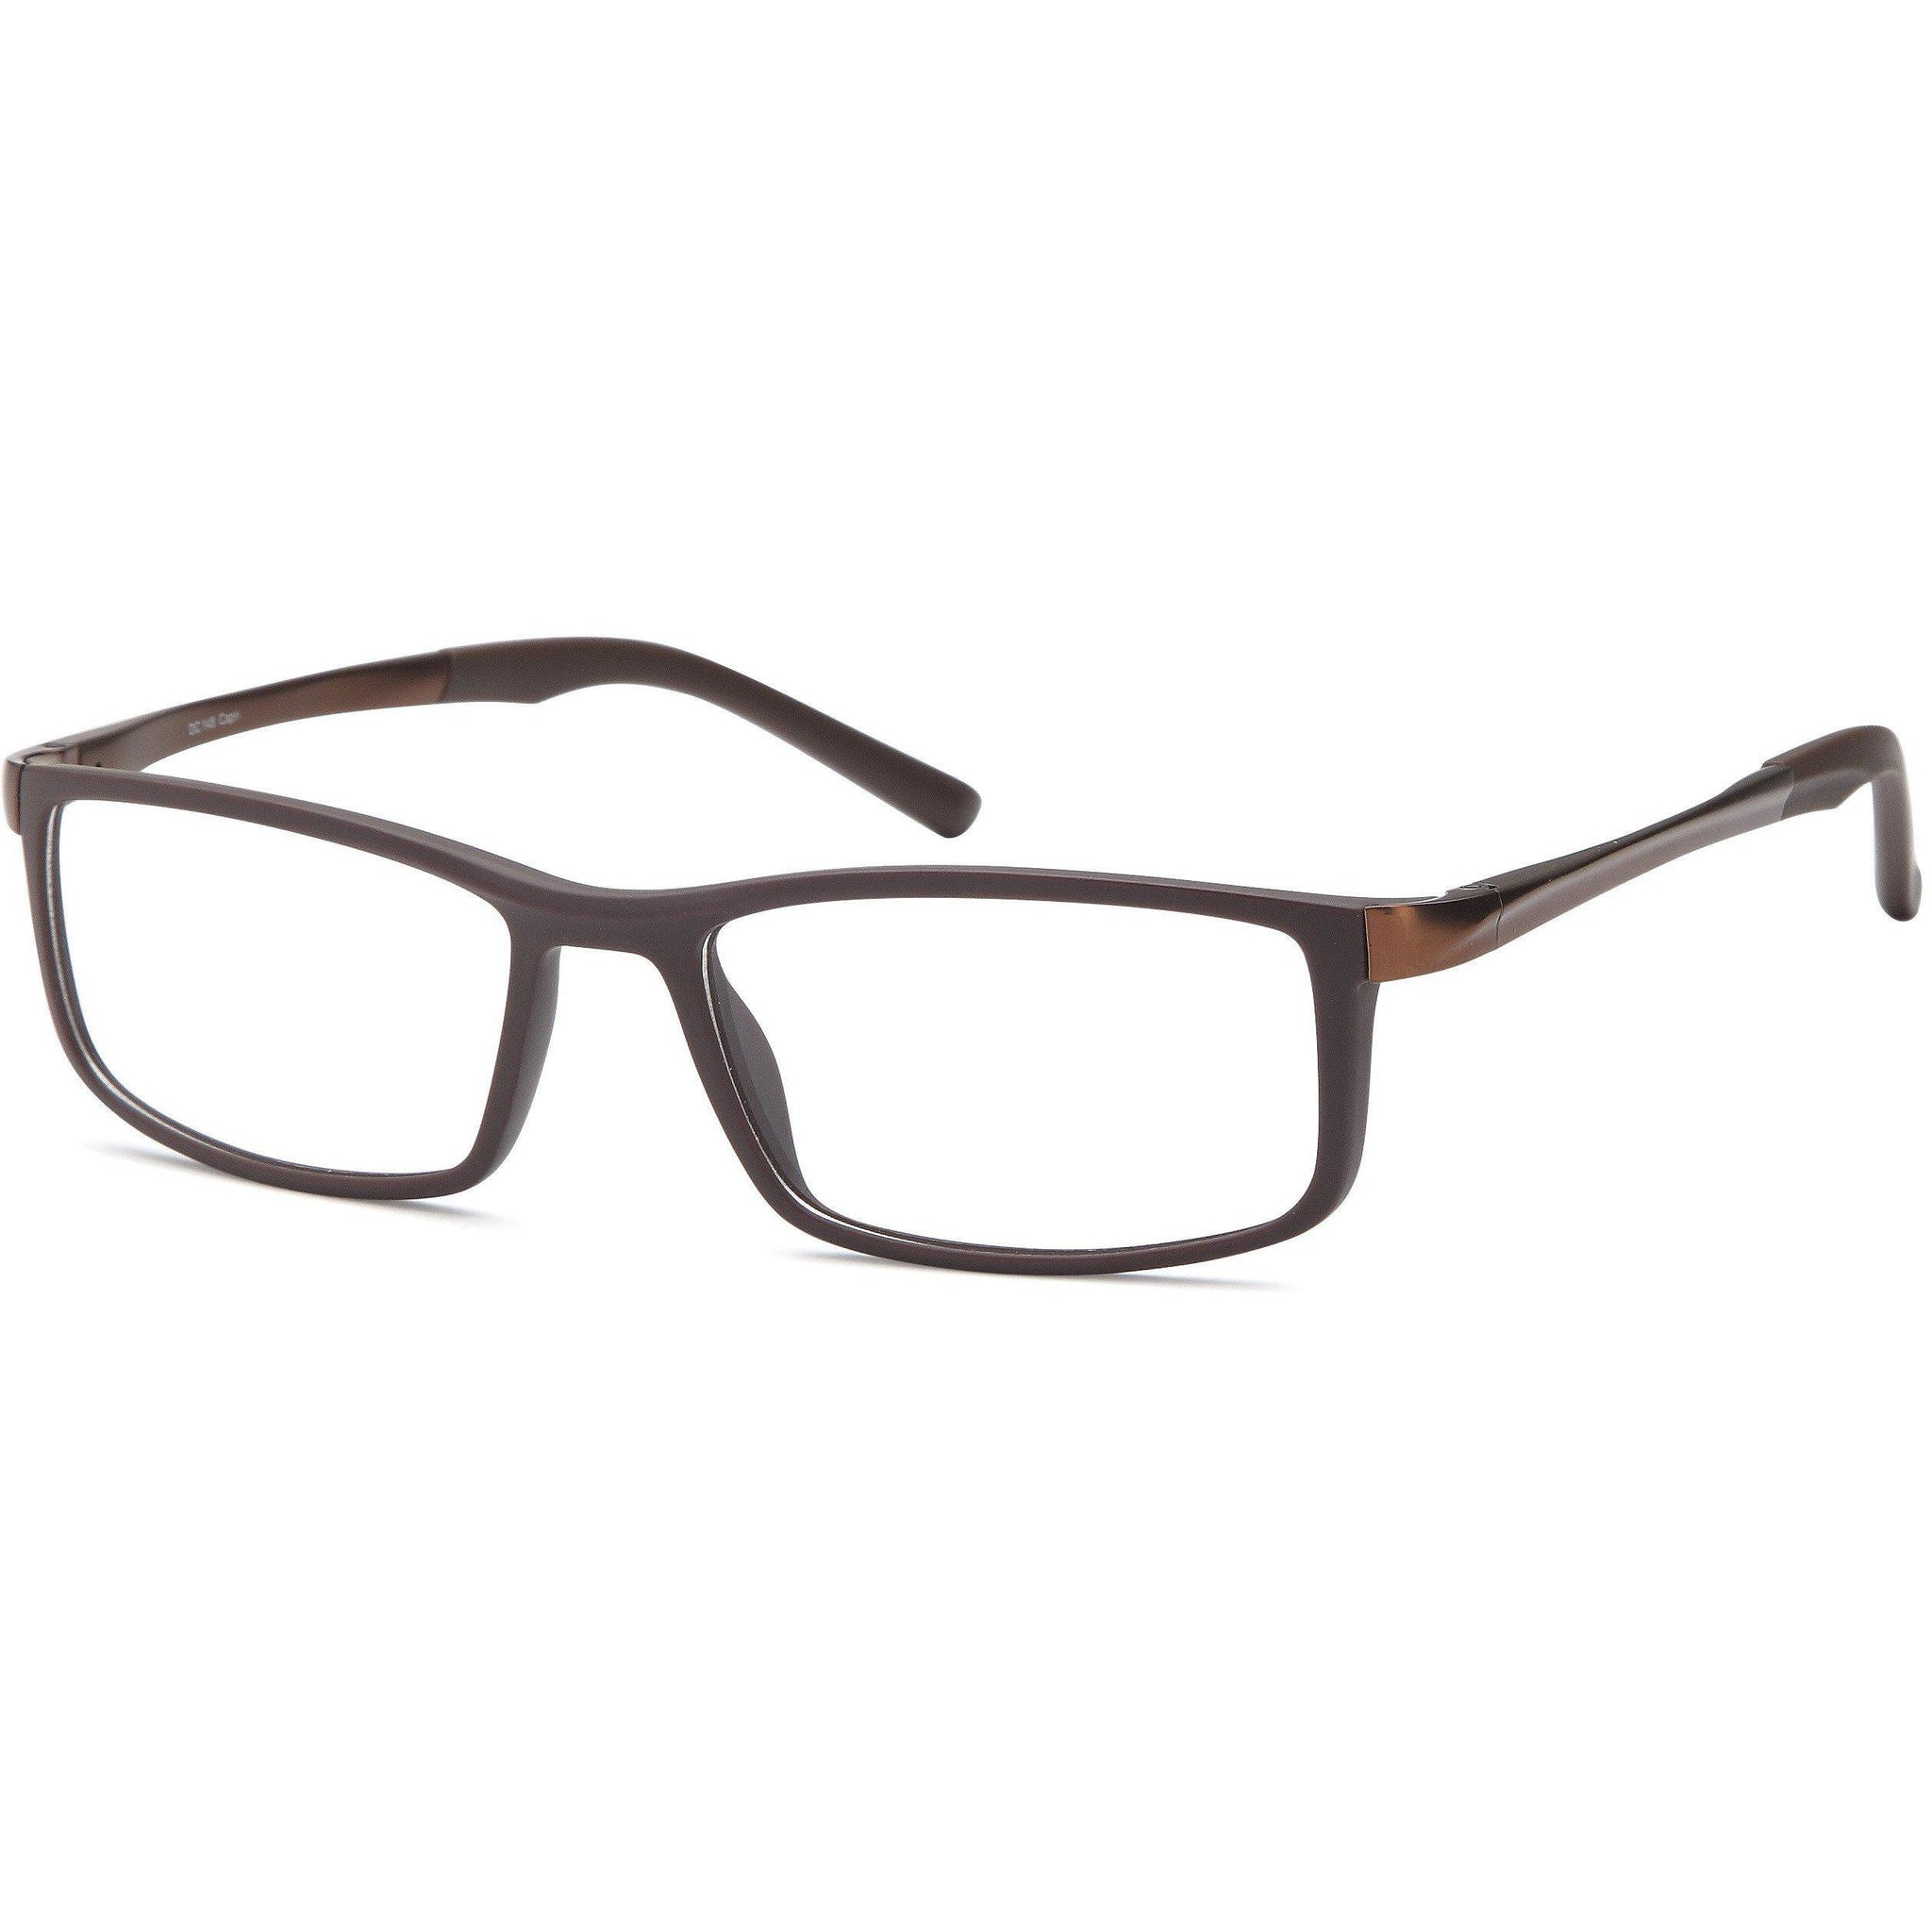 Di Caprio Prescription Glasses DC 148 Eyeglasses Frame - timetoshade